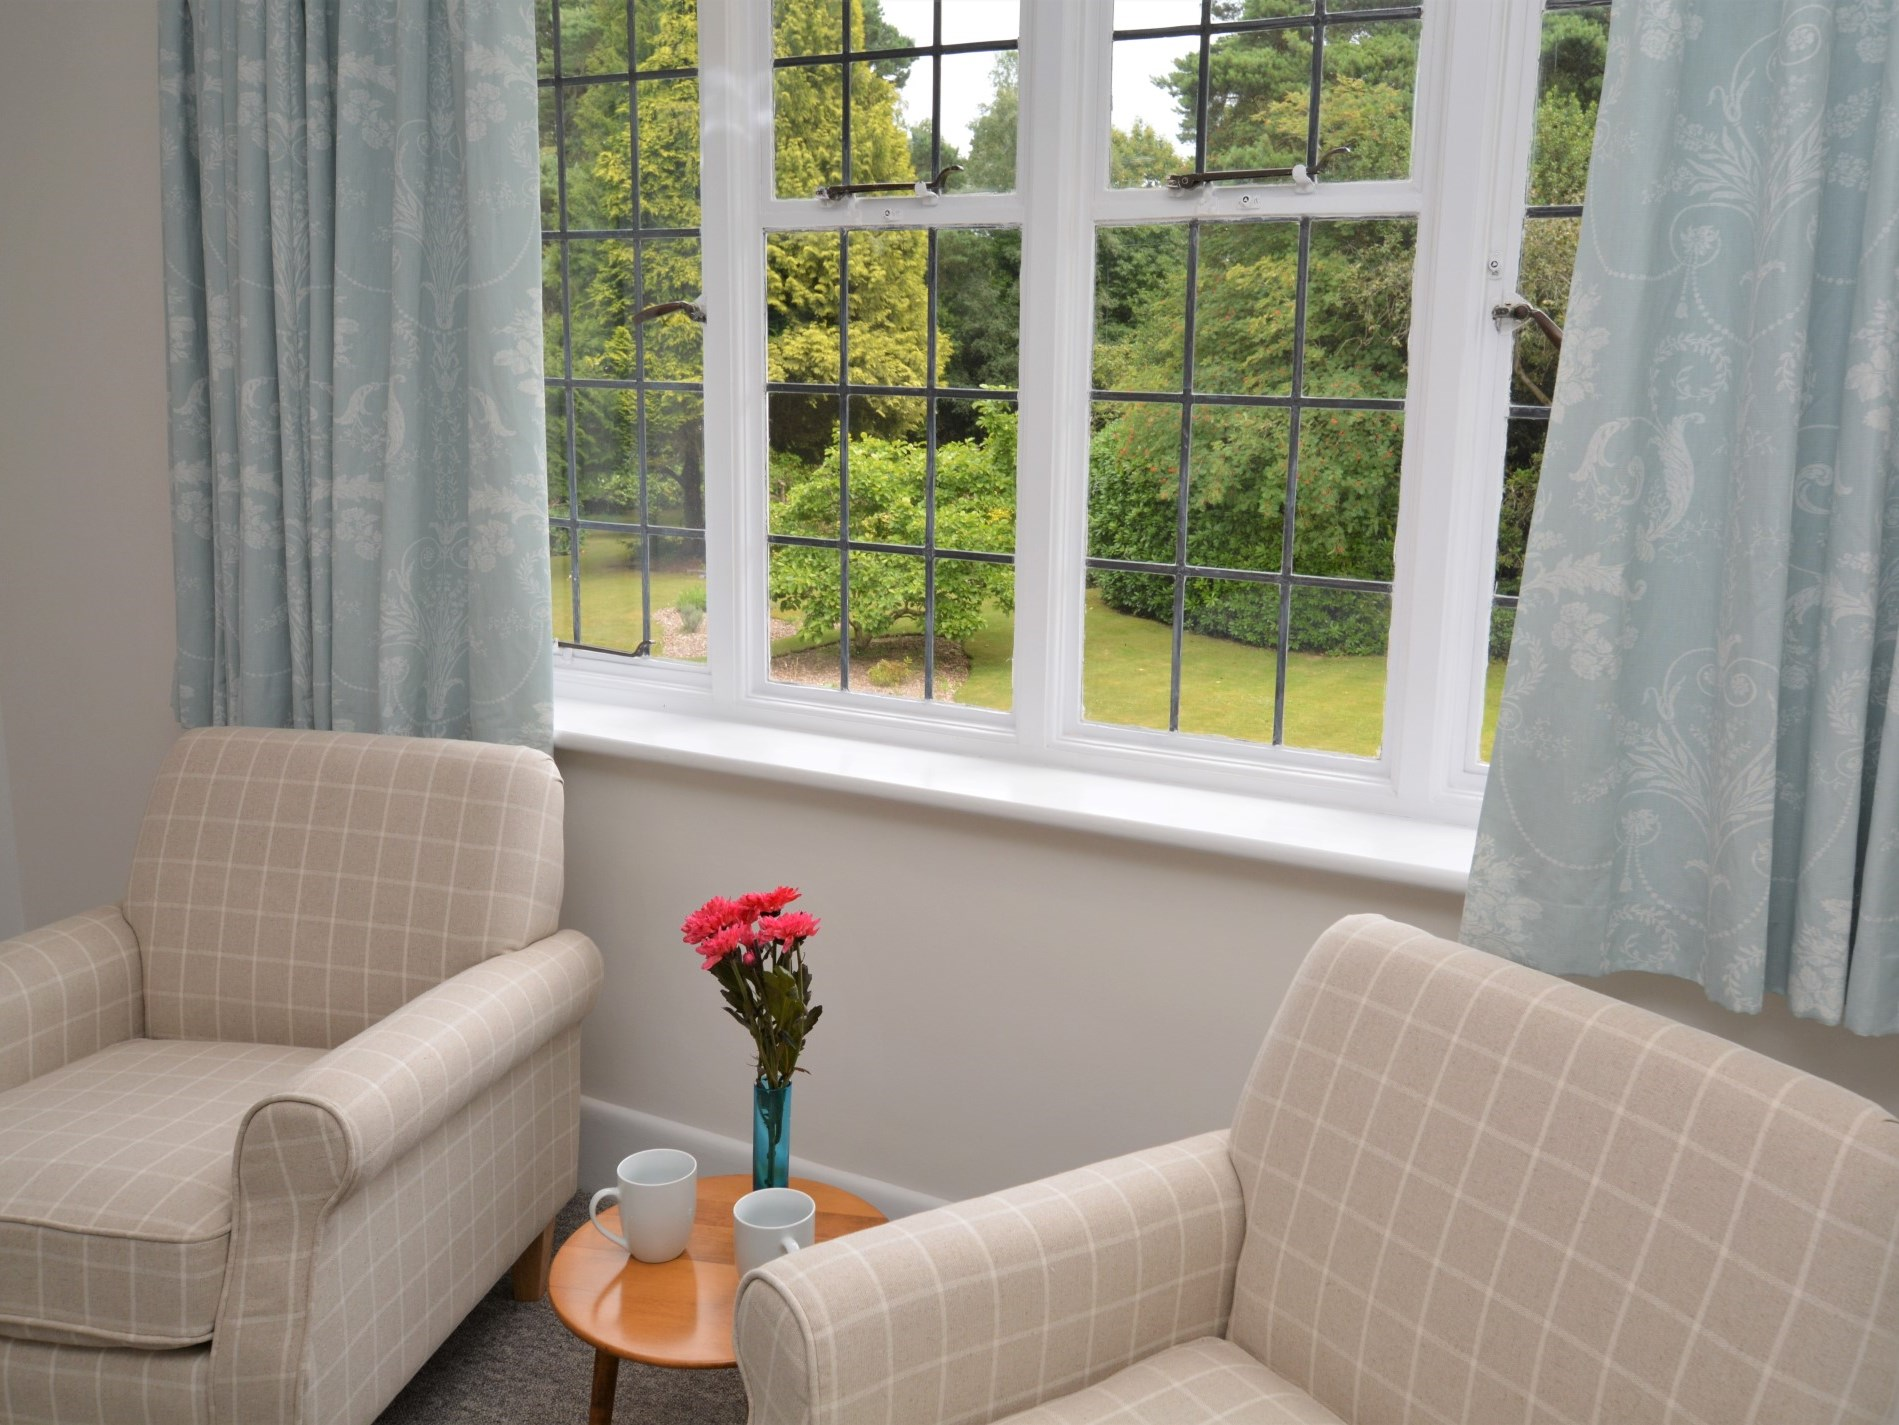 Views over the garden from the bedroom